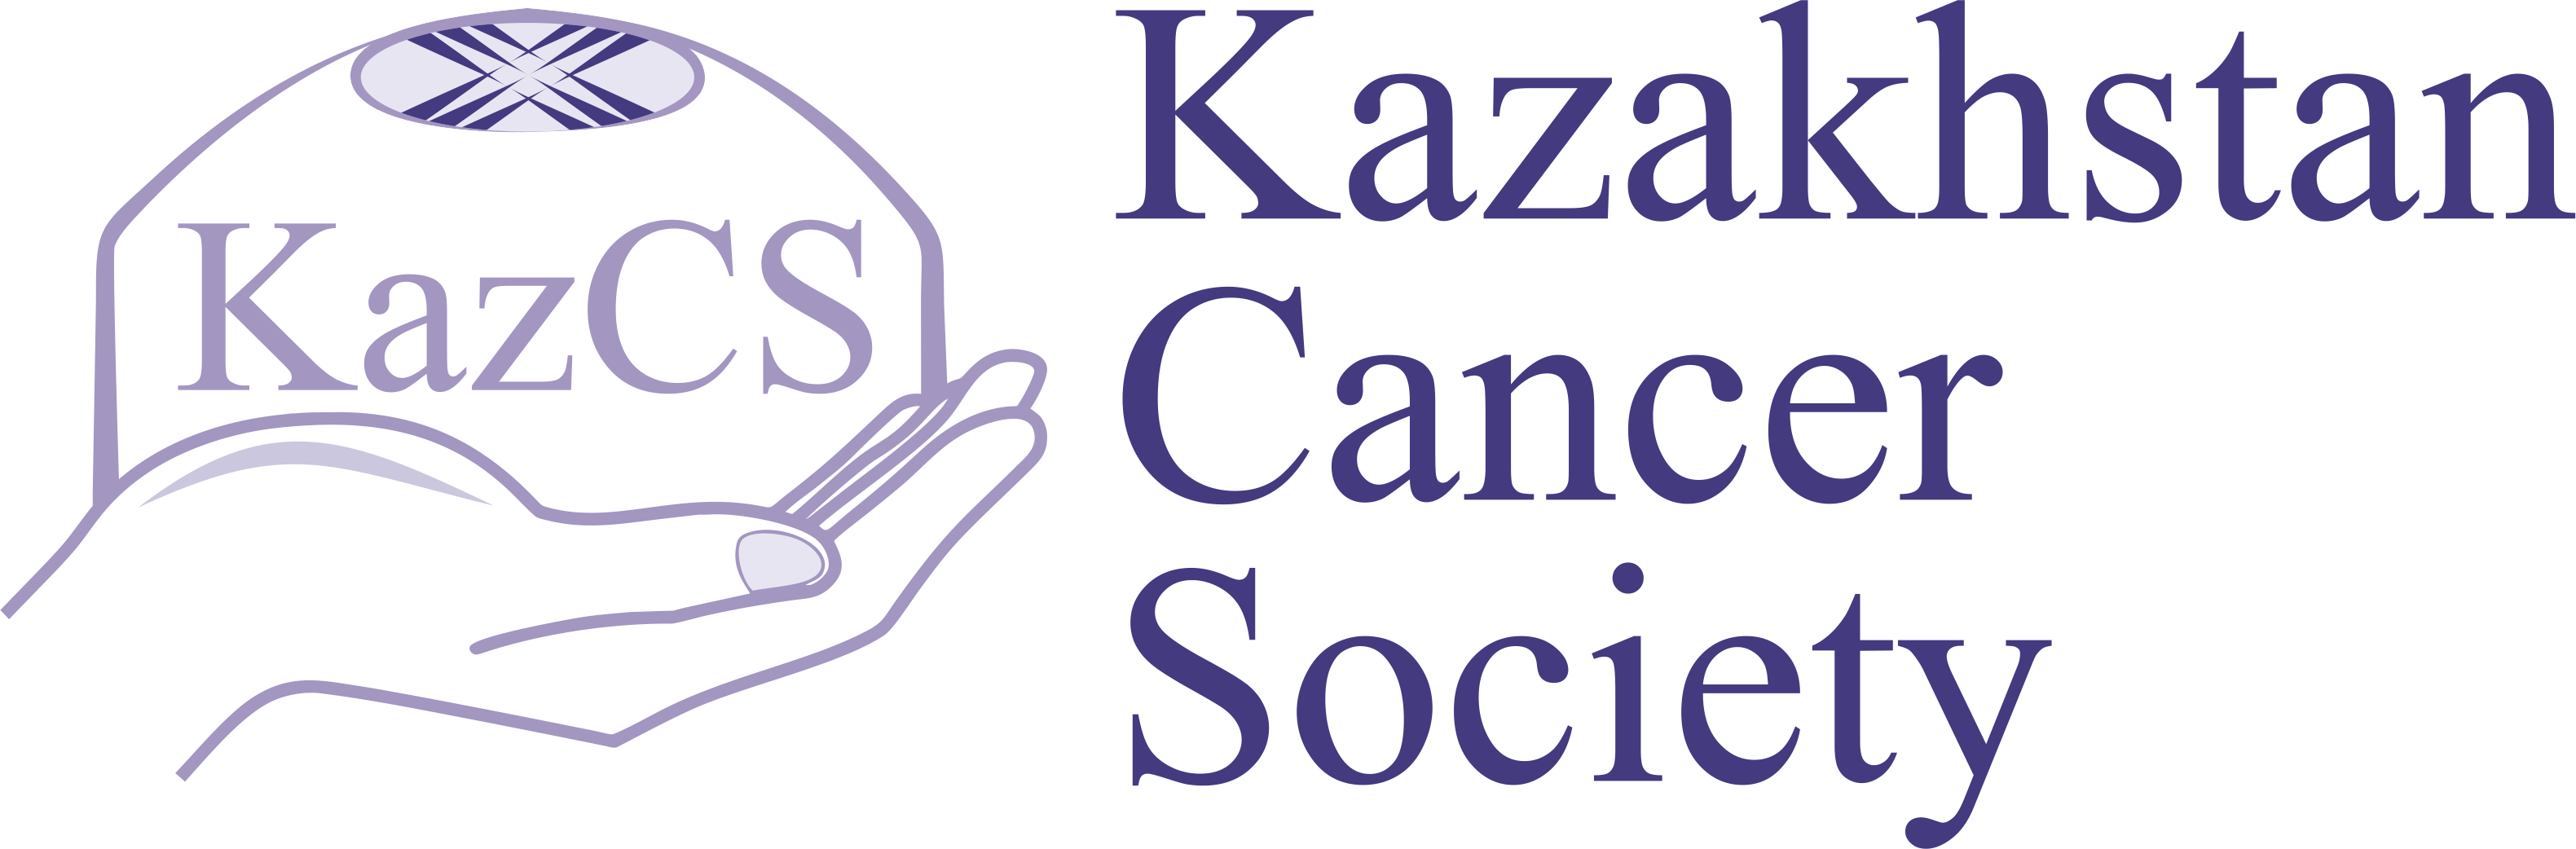 Join To Kazakh Cancer Society (photo)